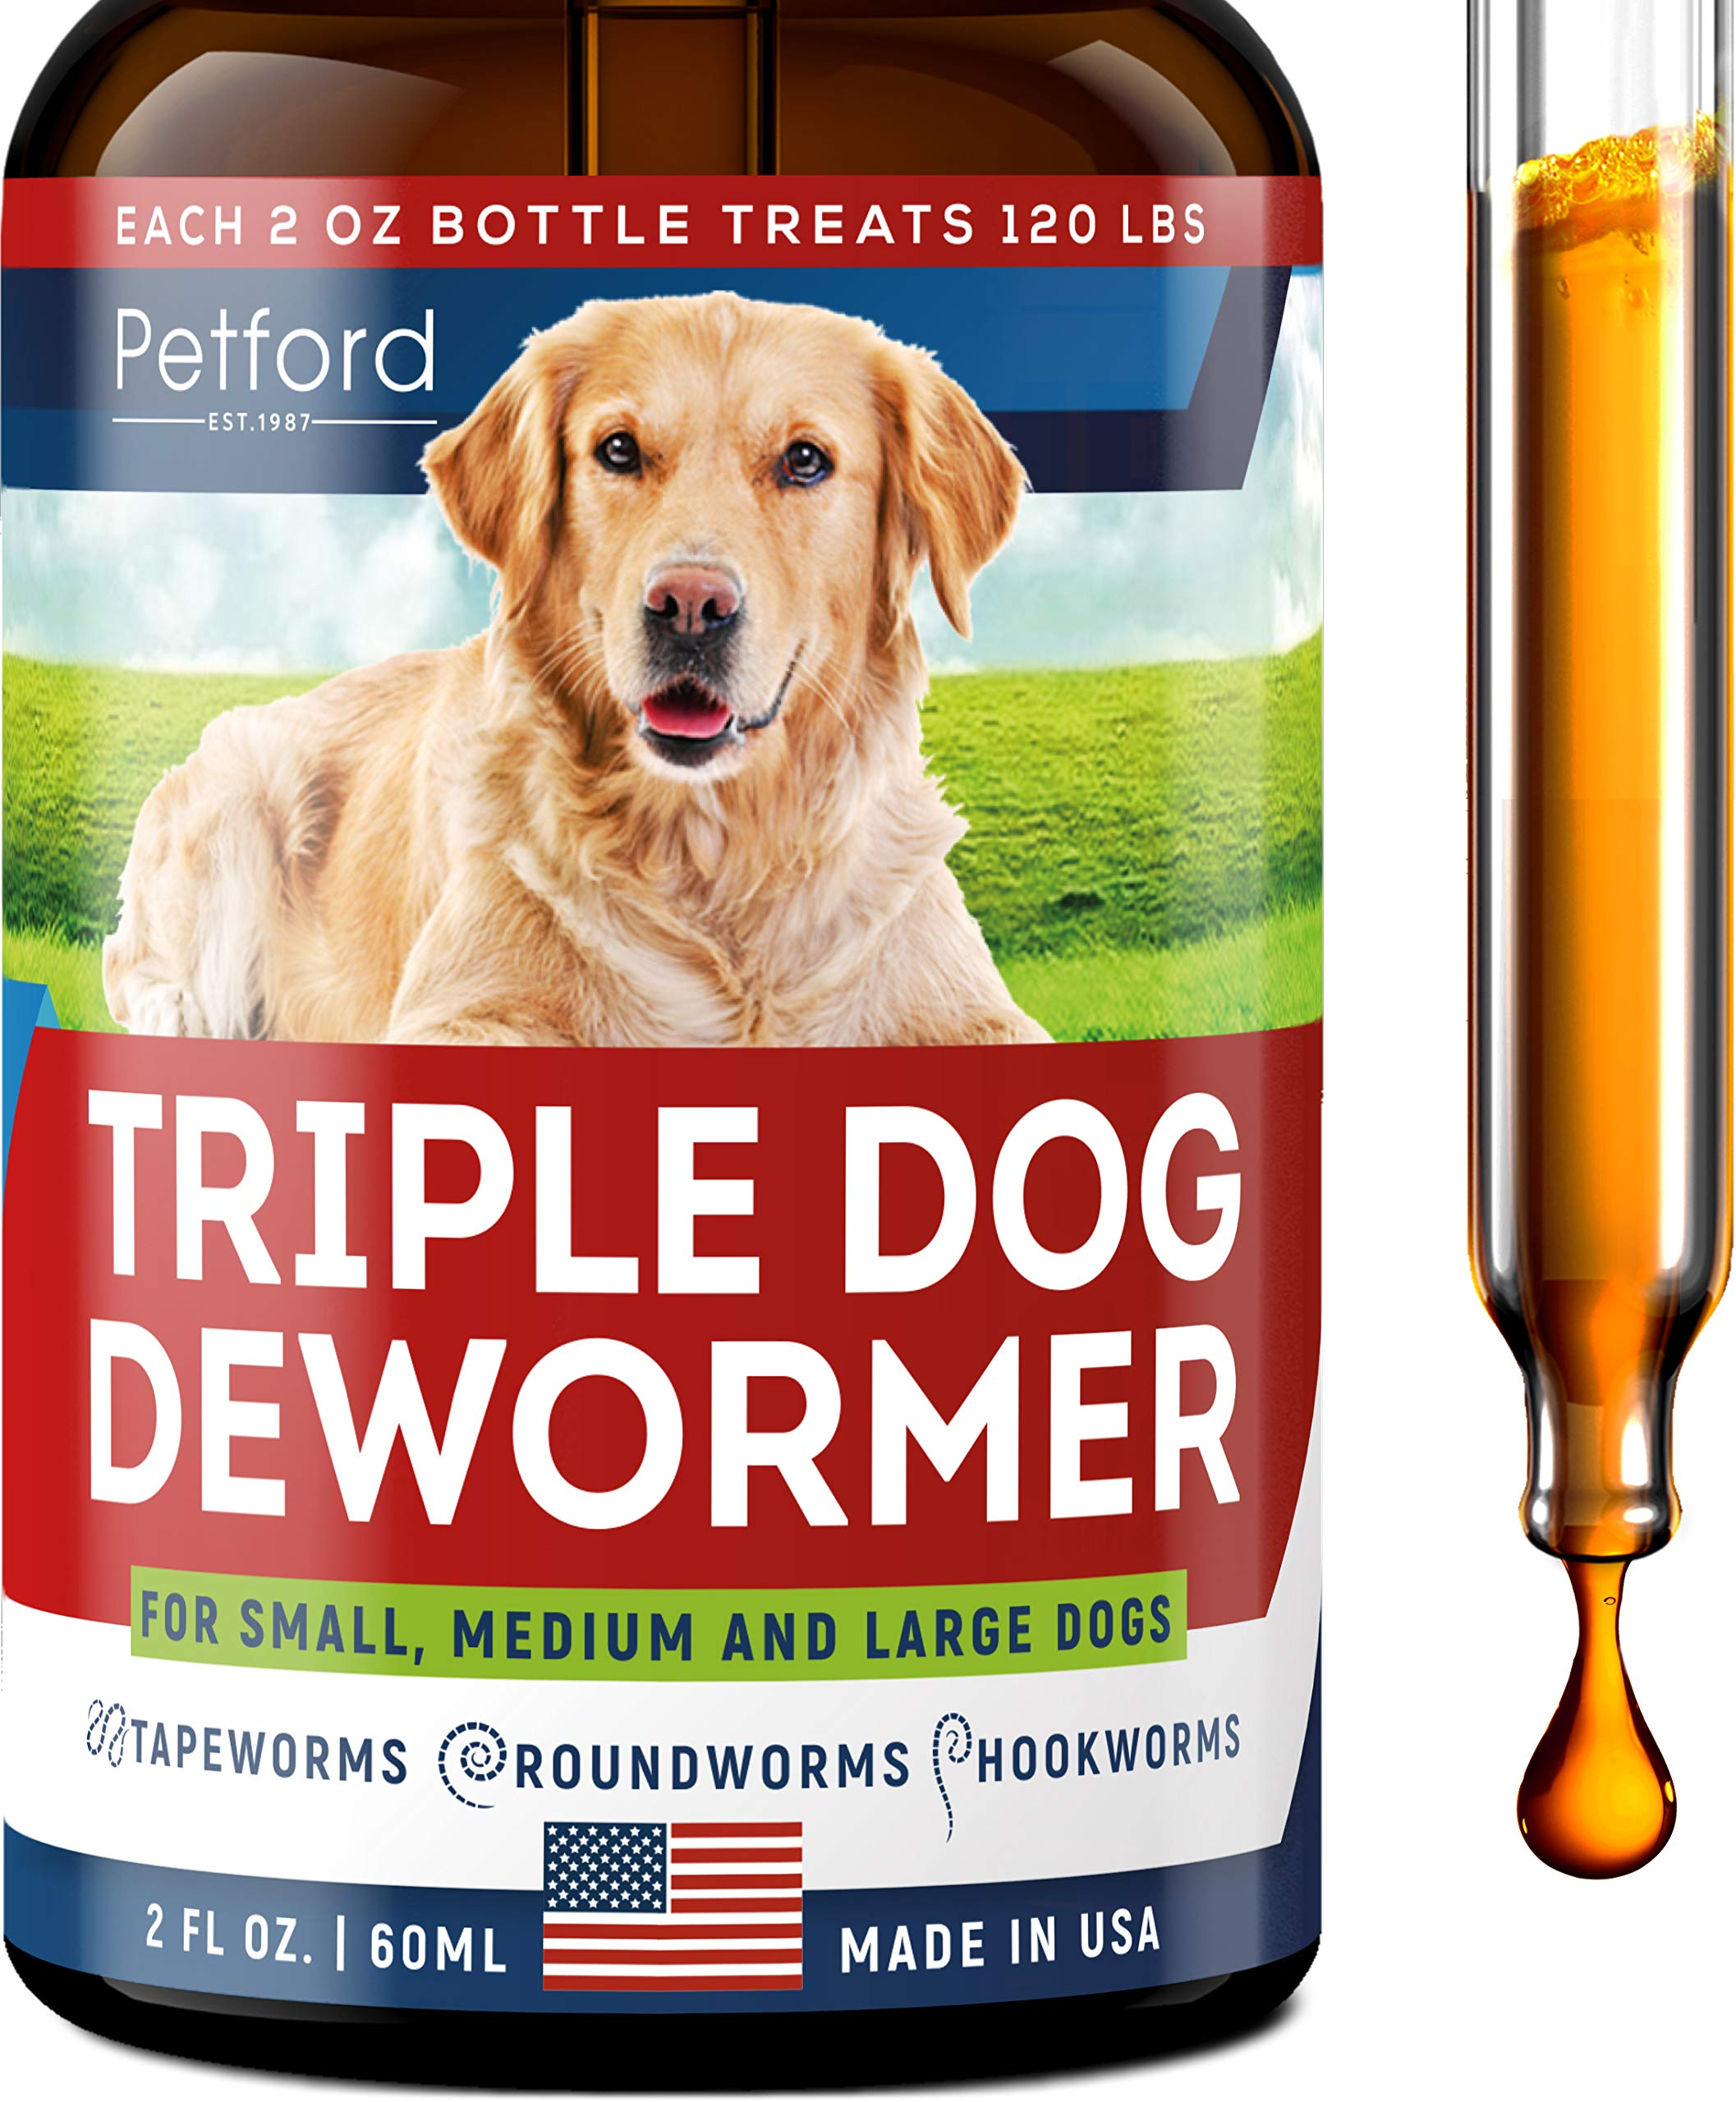 Triple Dog Dewоrmer - Made in USA - Dewоrmer for Puppies, Small & Large Breeds - Wоrm Treatment - Powerful Canine Dewоrmer for Hookwоrm, Roundwоrm & Tapewоrm - Liquid Dog Wоrmer with MAX Absorption by Petford est. 1987